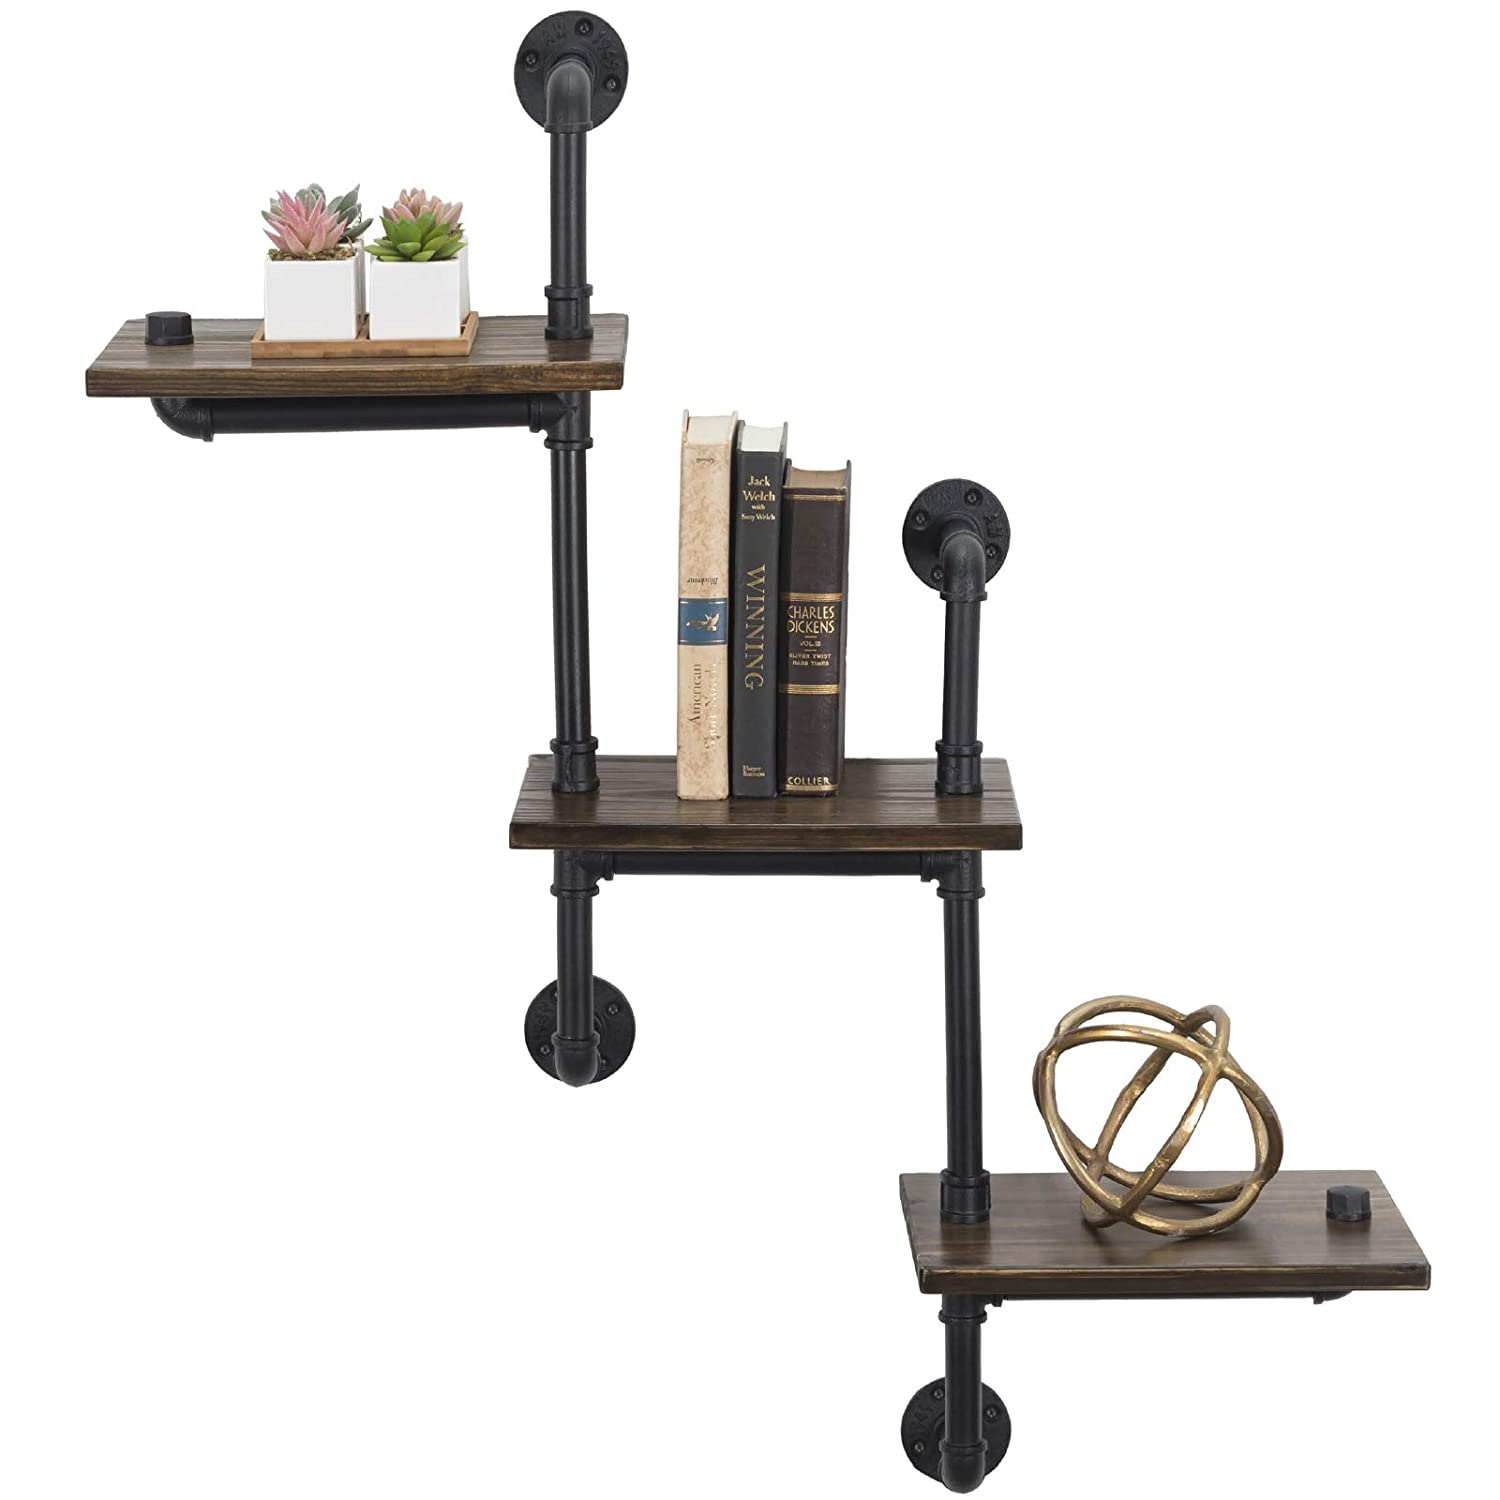 """3-Tier Wooden Wall Ladder Floating Rustic Shelf 35""""x40"""" With Iron Black Pipe Hardware For Bedroom, Kitchen, Office"""